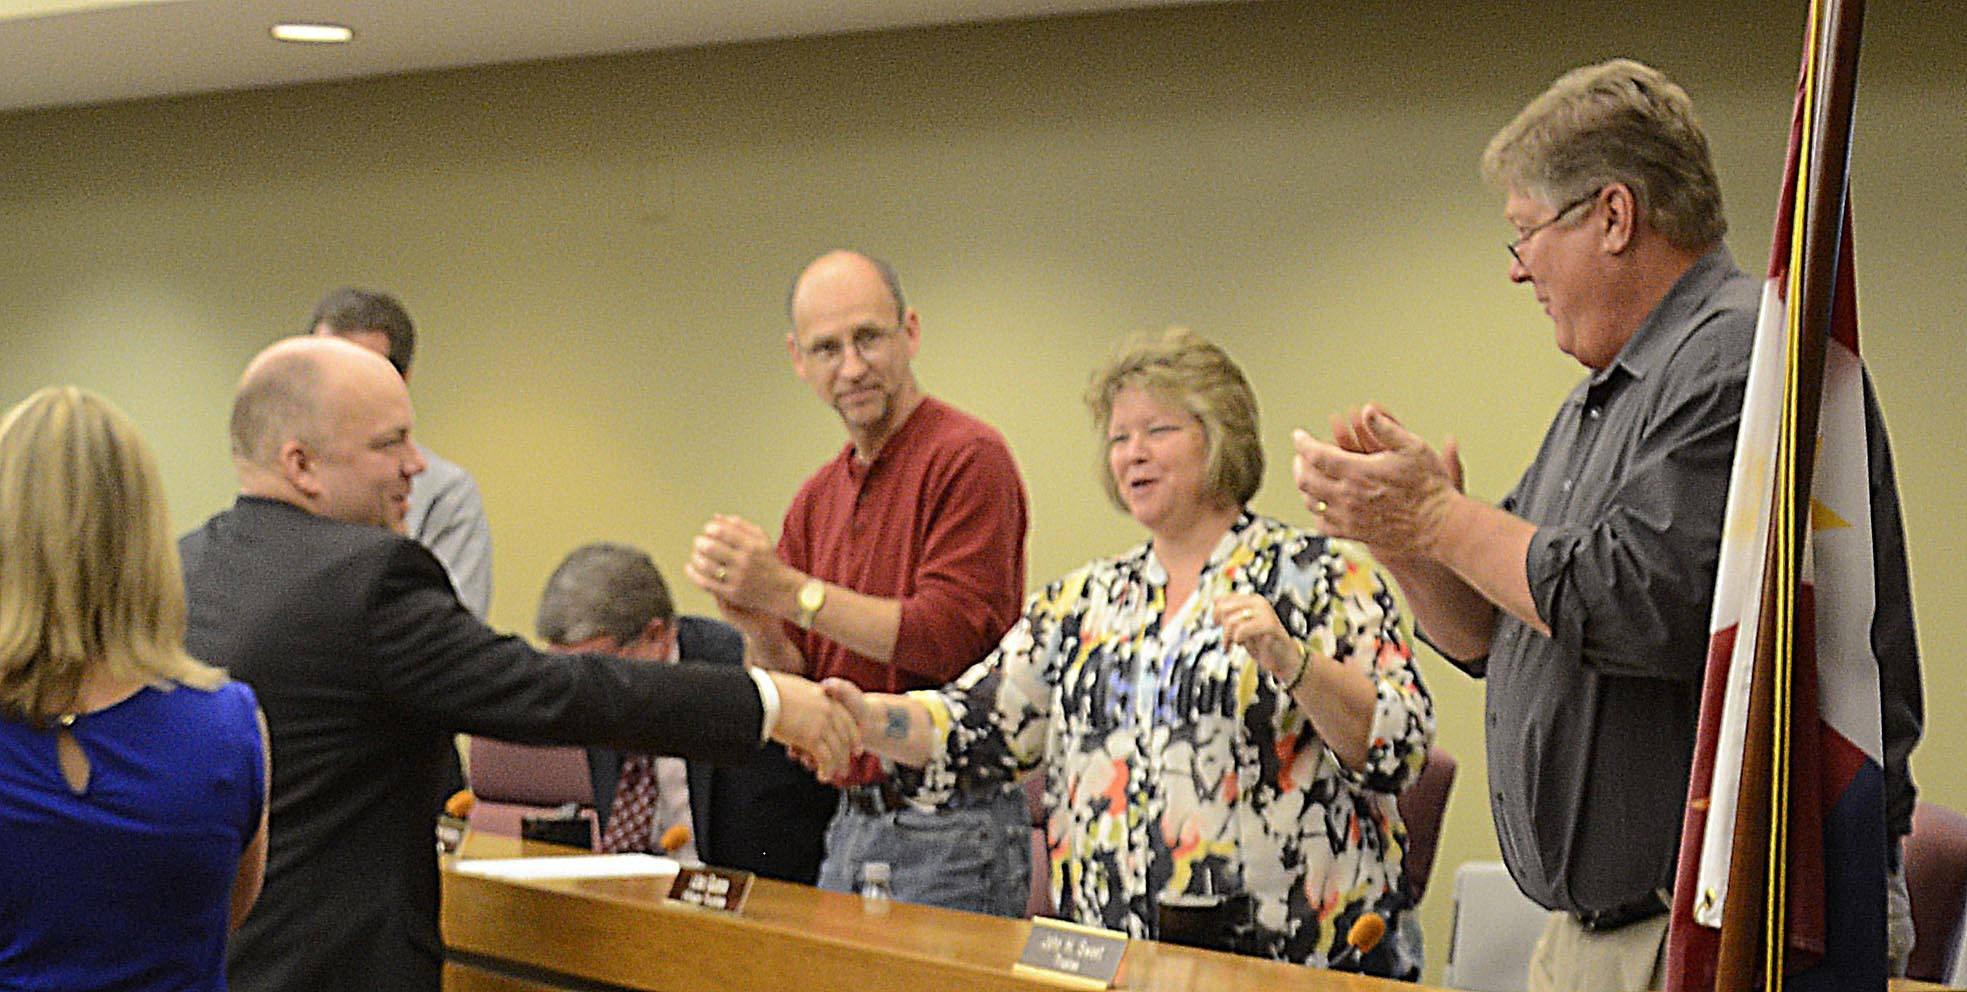 South Elgin police detective Brian Polkinghorn shakes hands with village board members after he was named Officer of the Year Monday night at the village board meeting.